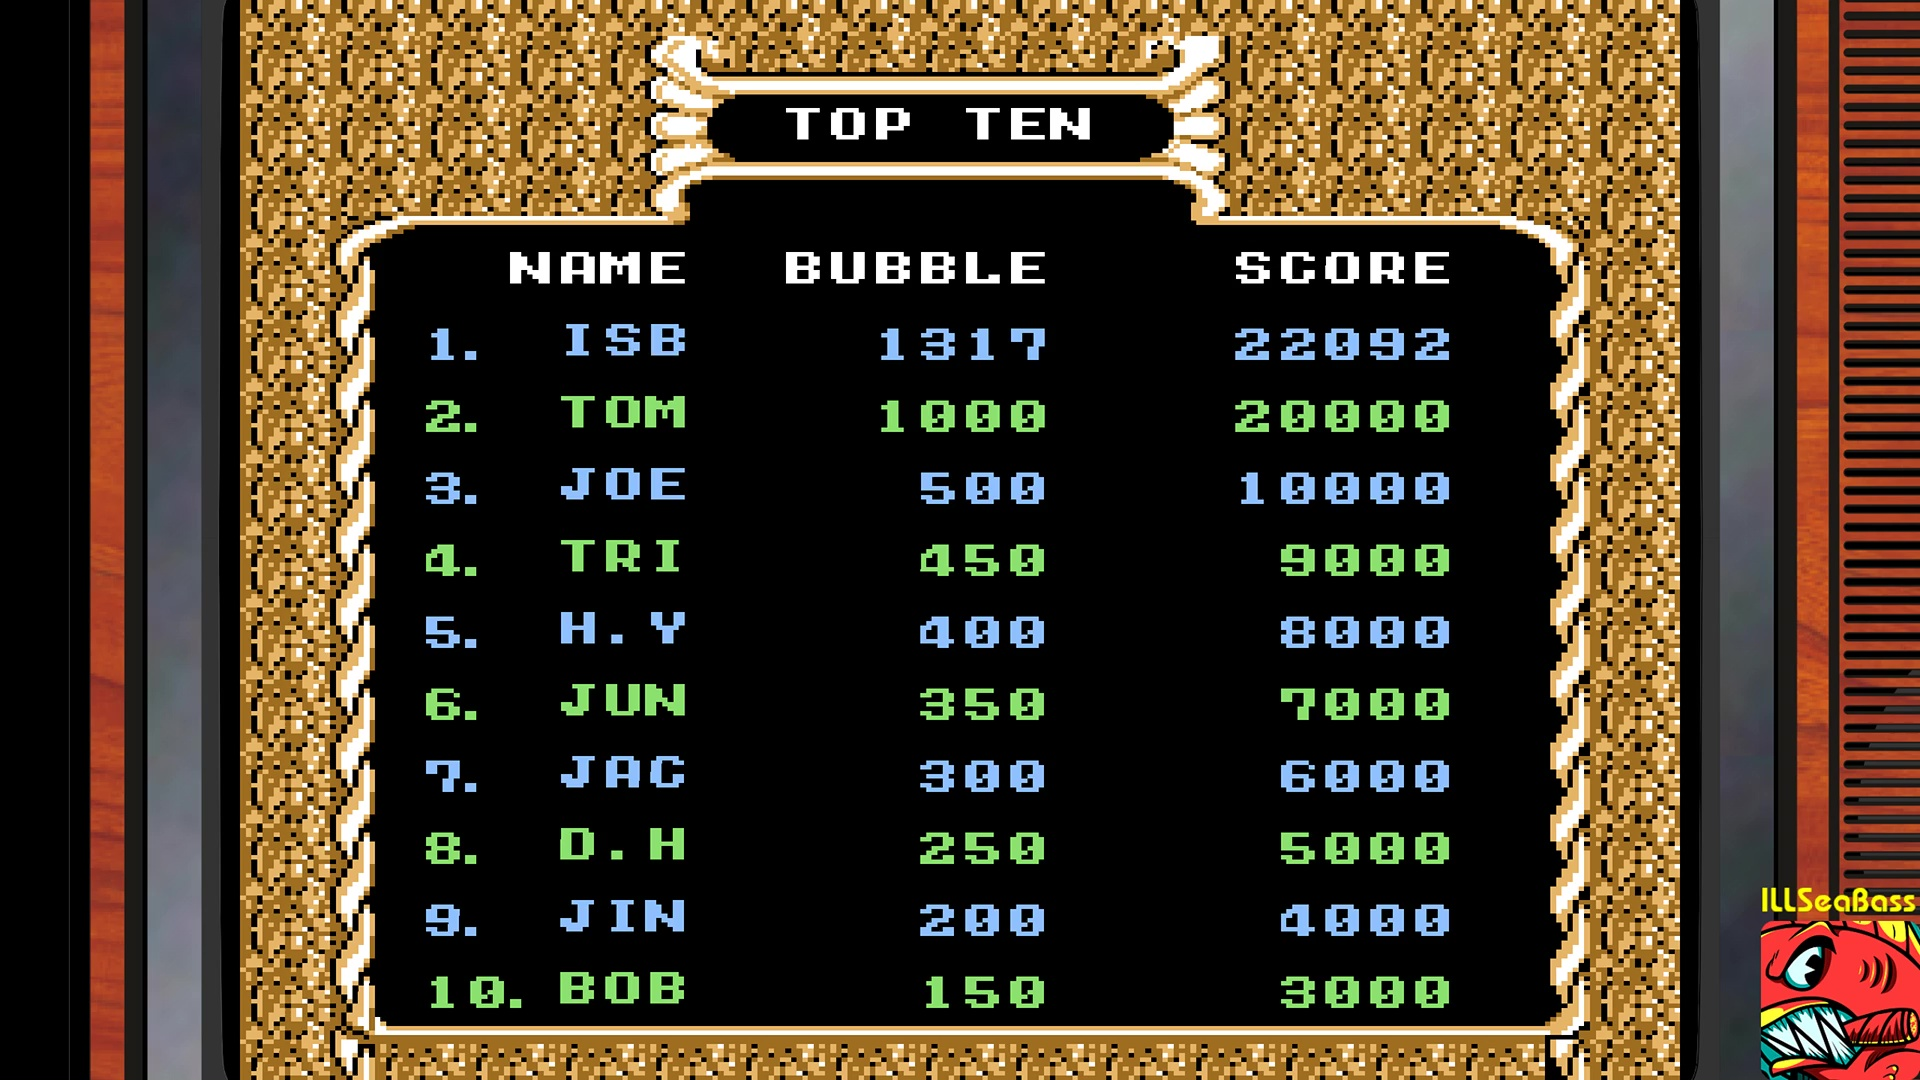 ILLSeaBass: Bubble Bath Babes [Type A] (NES/Famicom Emulated) 22,092 points on 2017-11-12 01:25:01